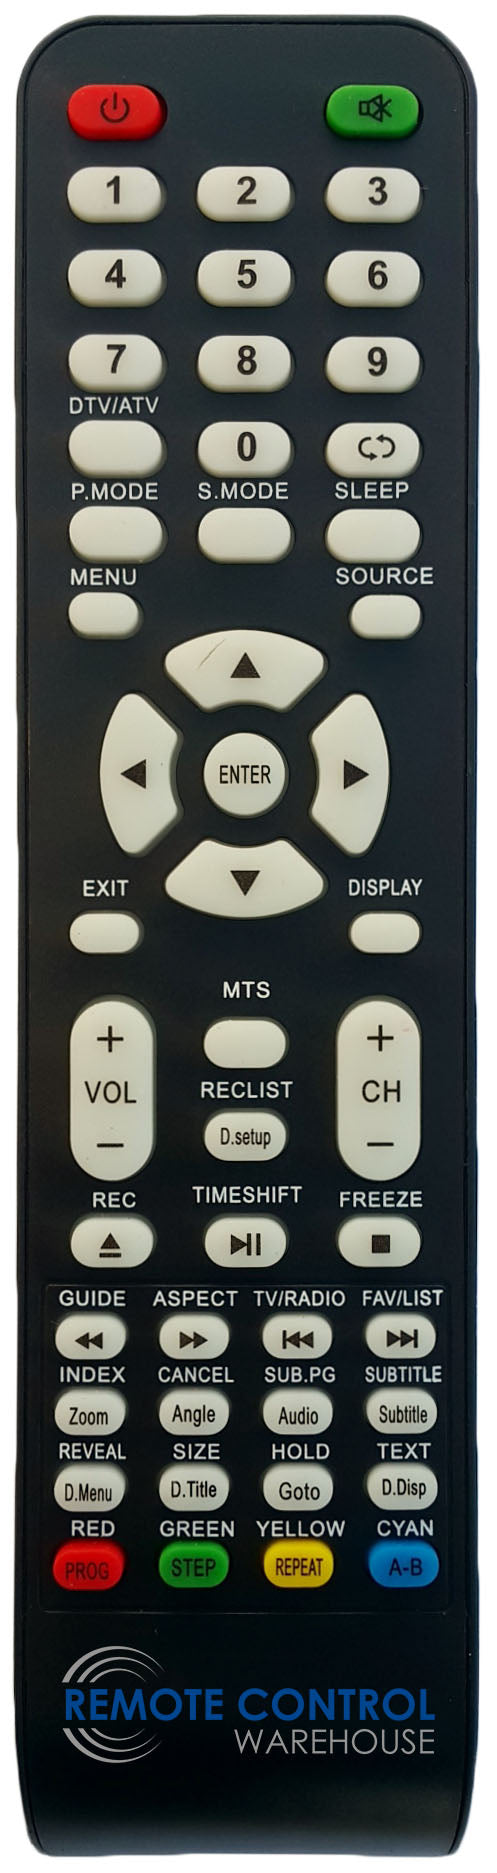 REPLACEMENT NEONIQ REMOTE CONTROL FOR NEONIQ LCD3888HD LCD TV - Remote Control Warehouse